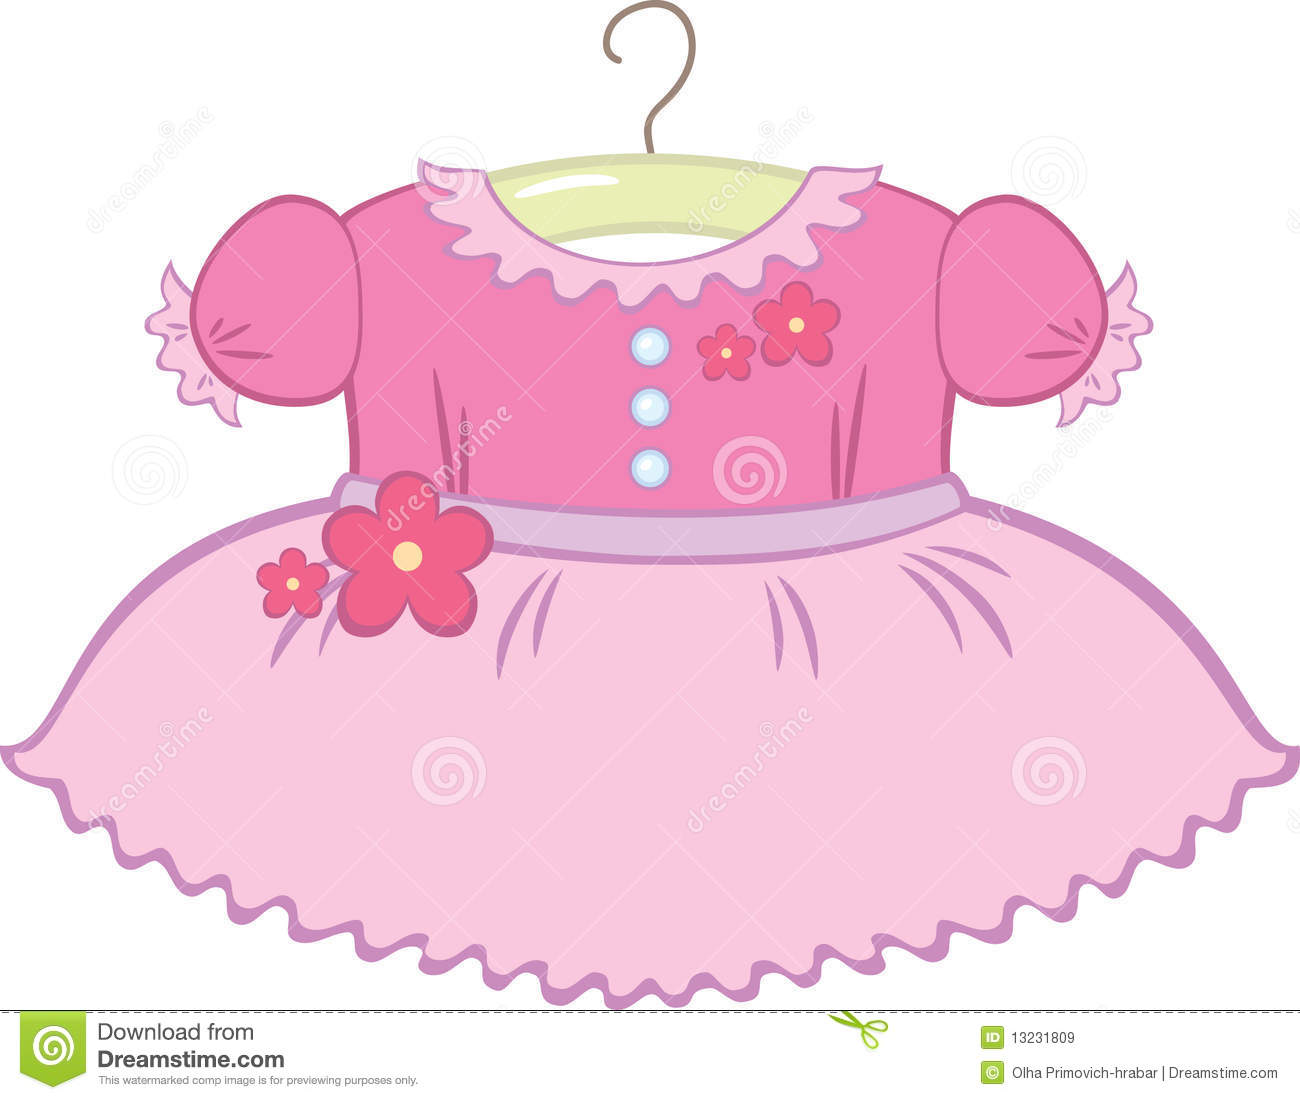 Baby girl dress clipart 3 » Clipart Station clip art library